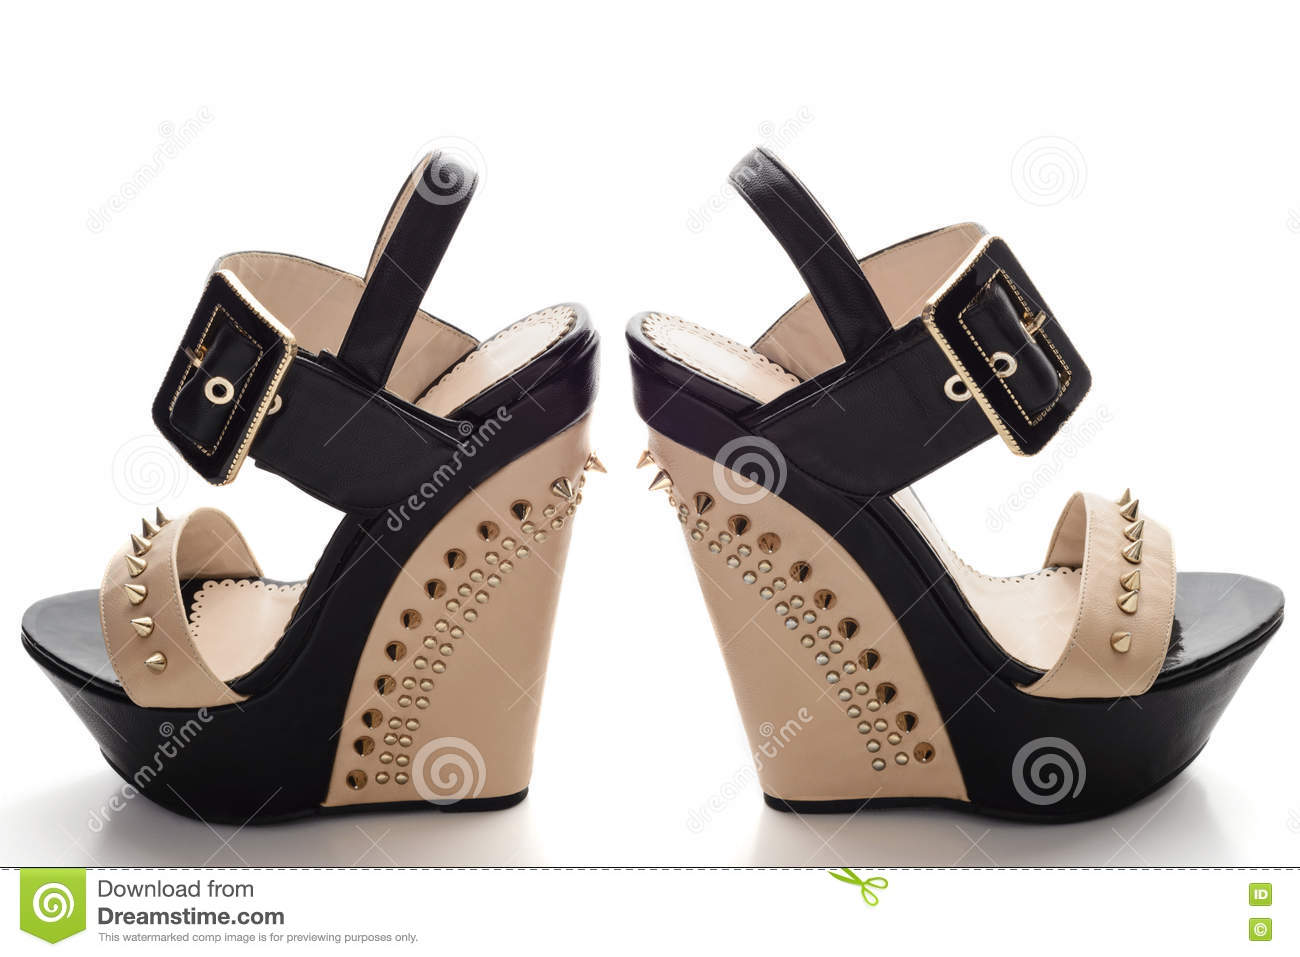 e6a02c3d9c7 Female black platform shoes with beige inserts and studs isolated on white